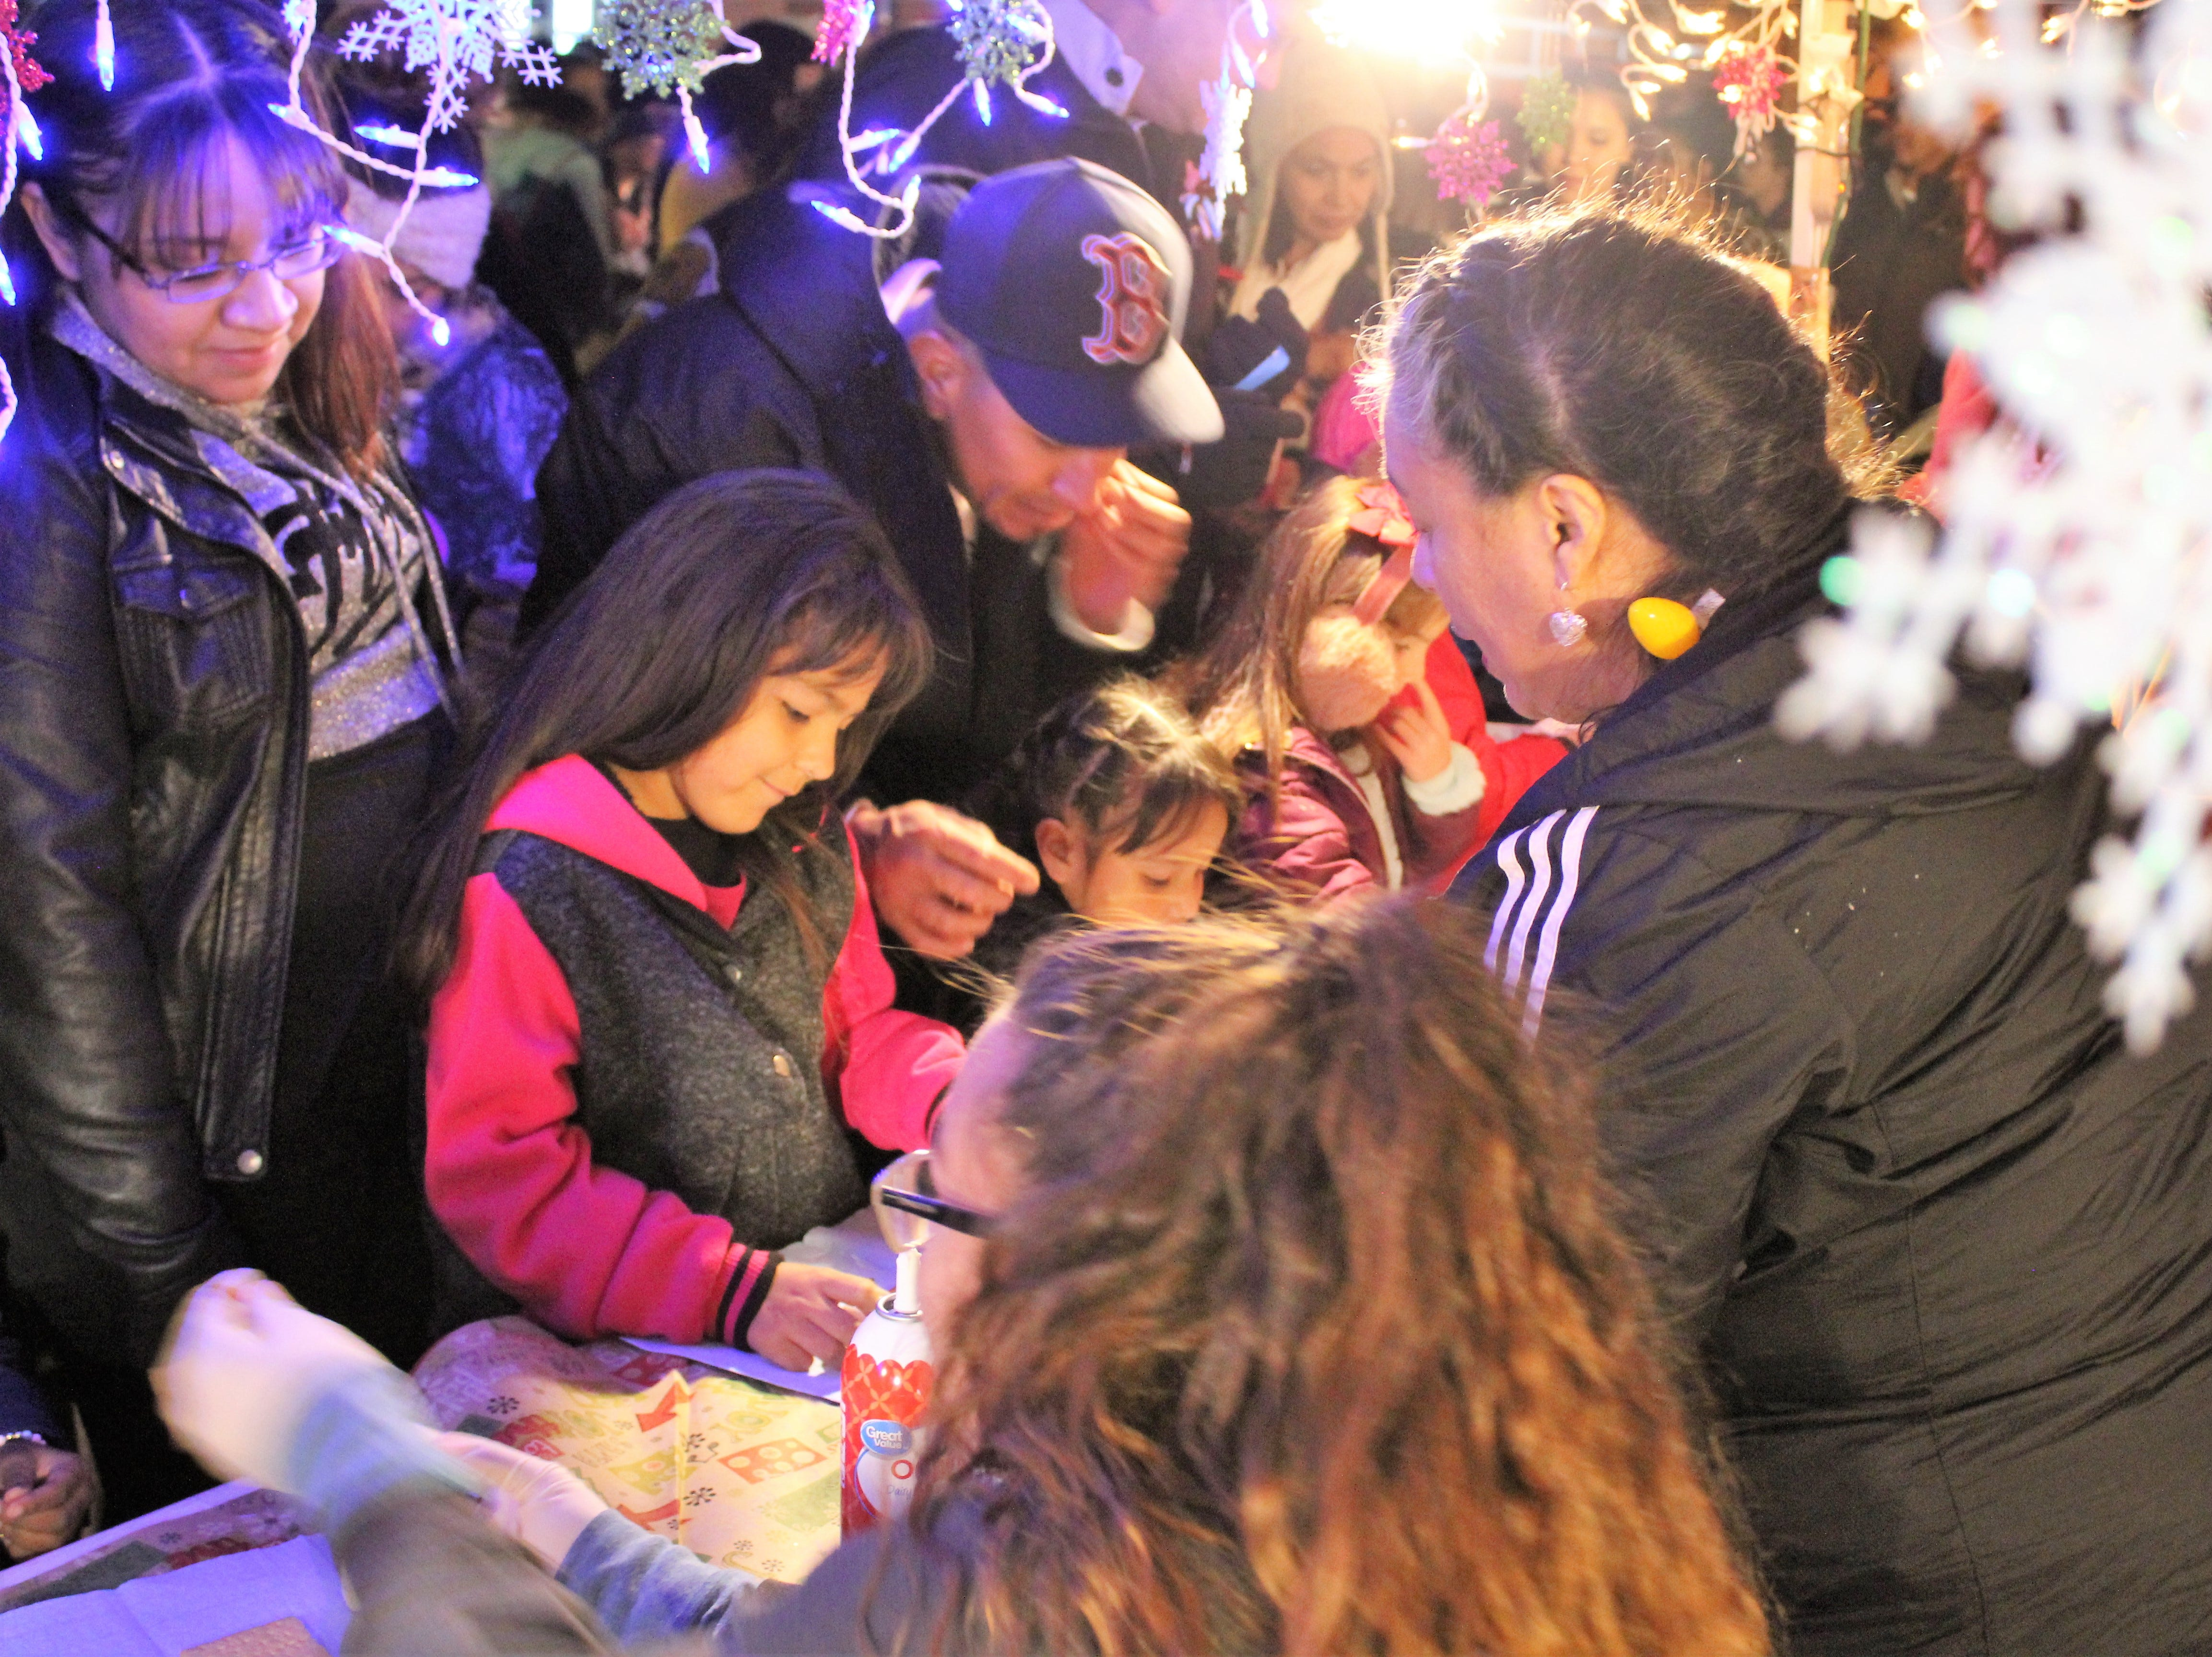 Utilities employees help deliver Christmas magic